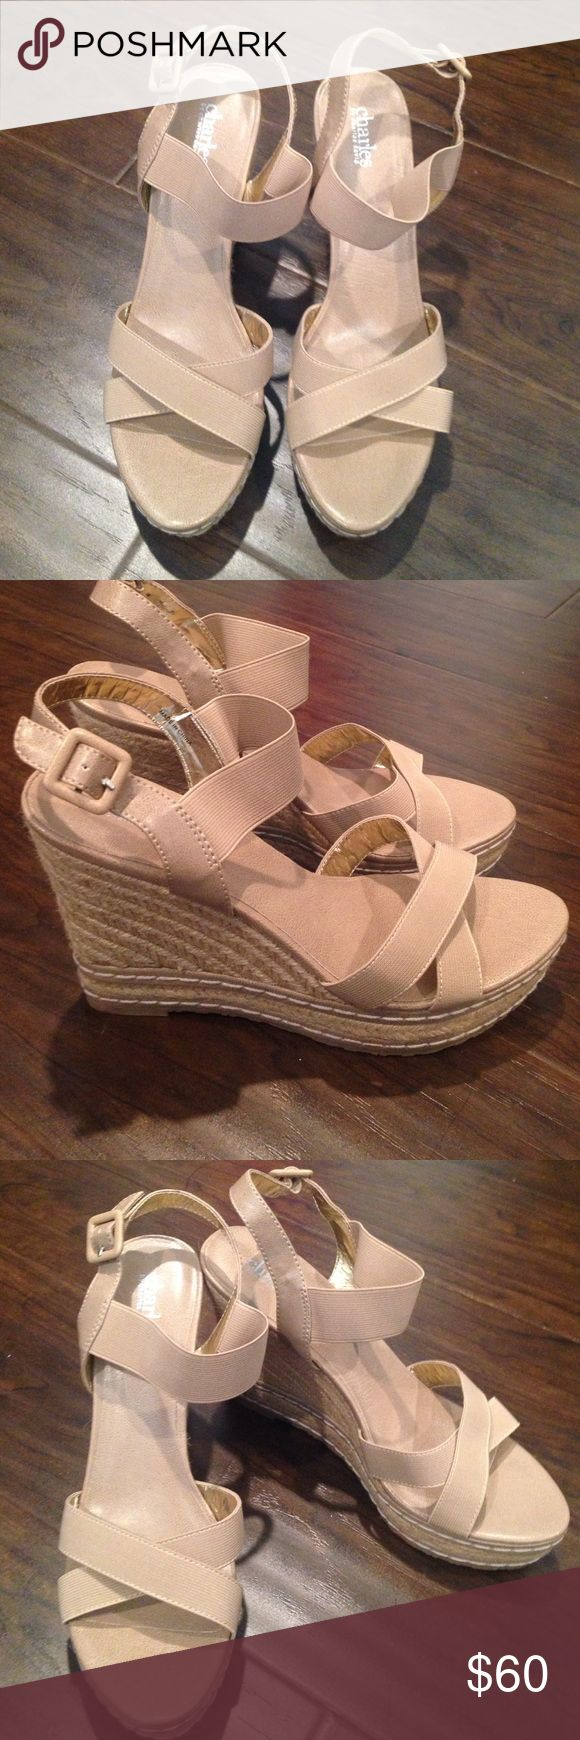 New Charles by Charles David wedges Never worn beige Charles by Charles Davis wedges size 10 Charles David Shoes Wedges